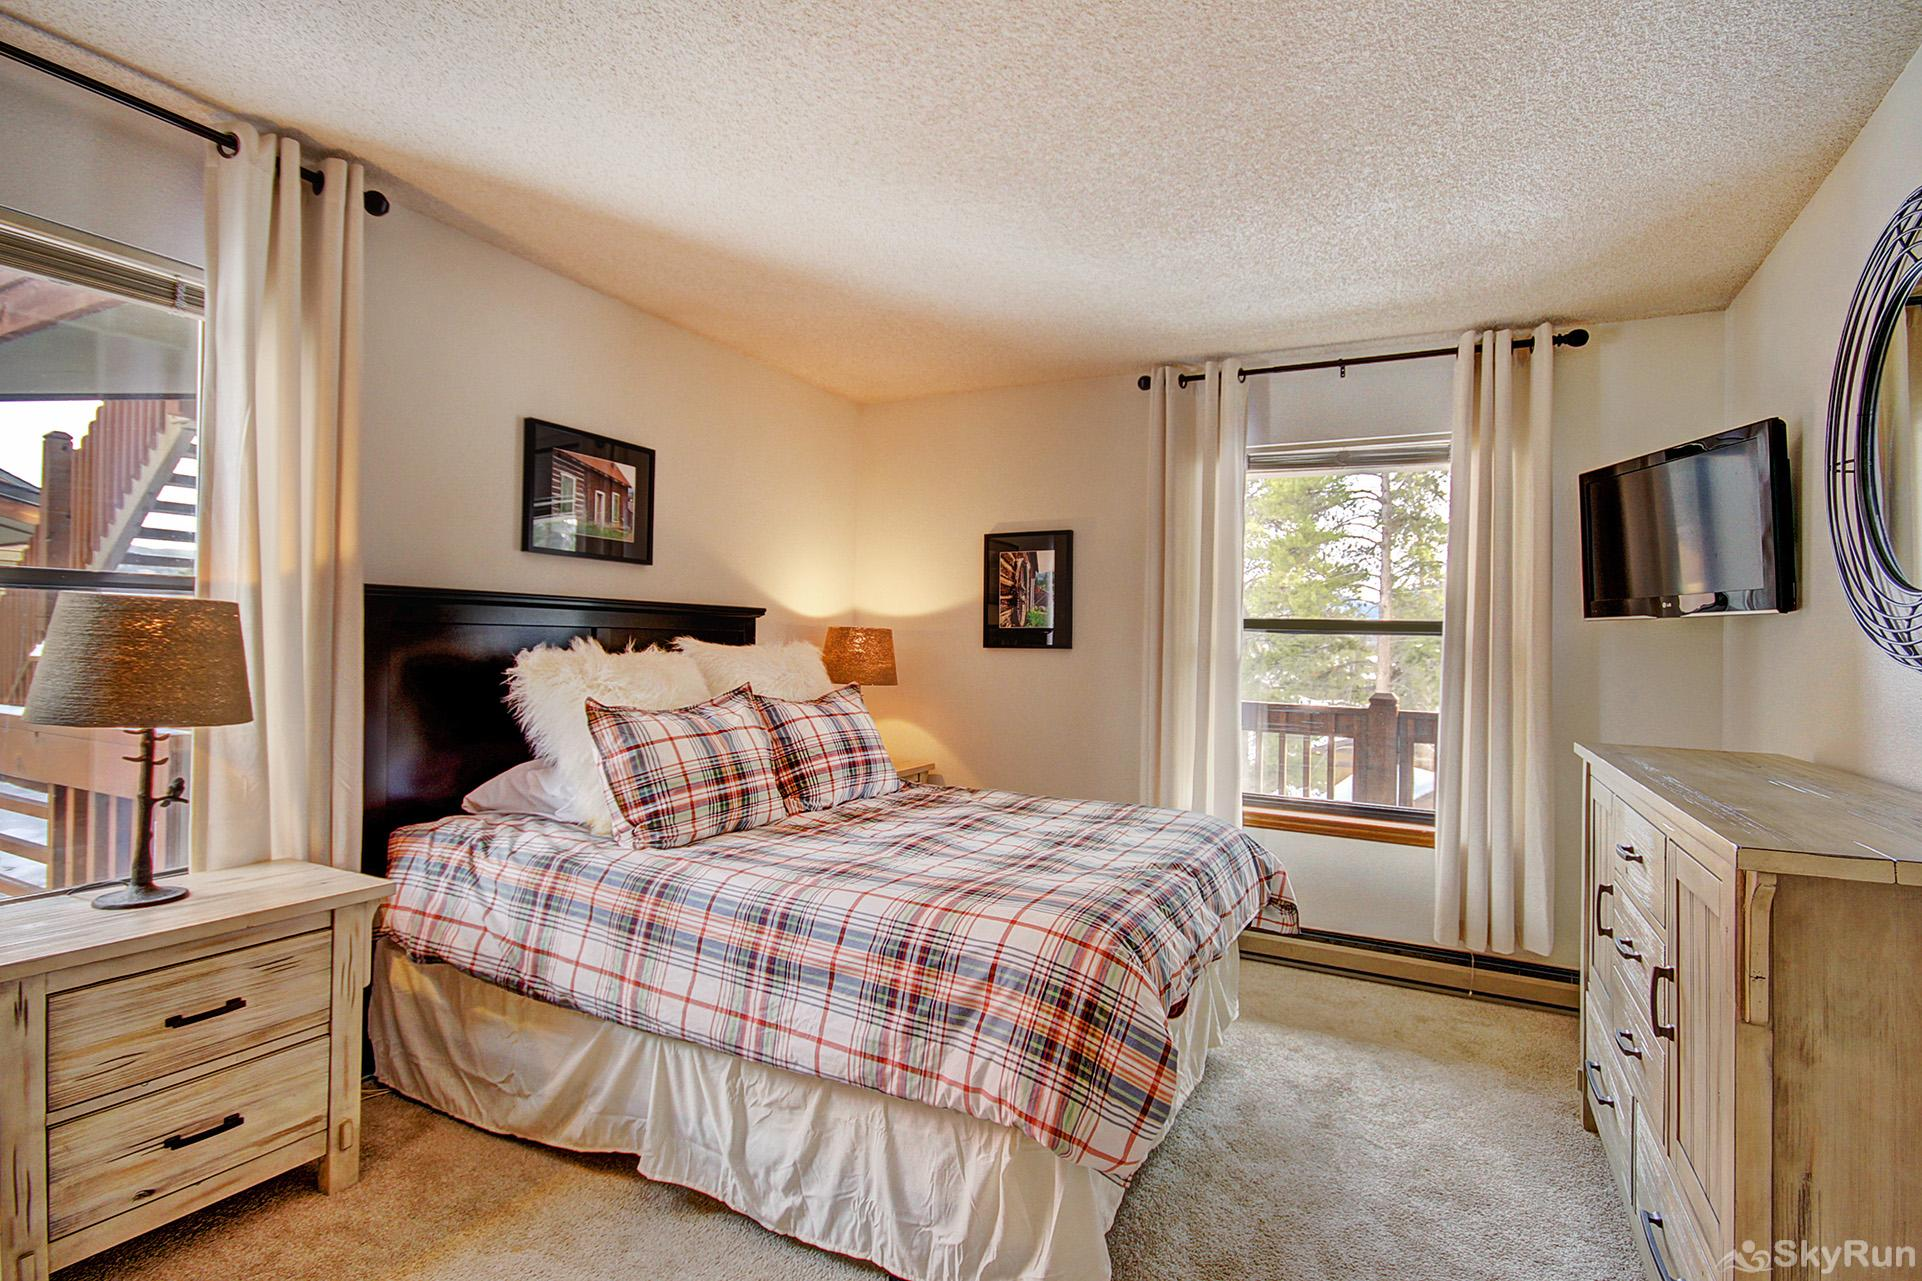 Tyra Summit A2E/F Second queen master bedroom with ensuite bath, flat screen TV